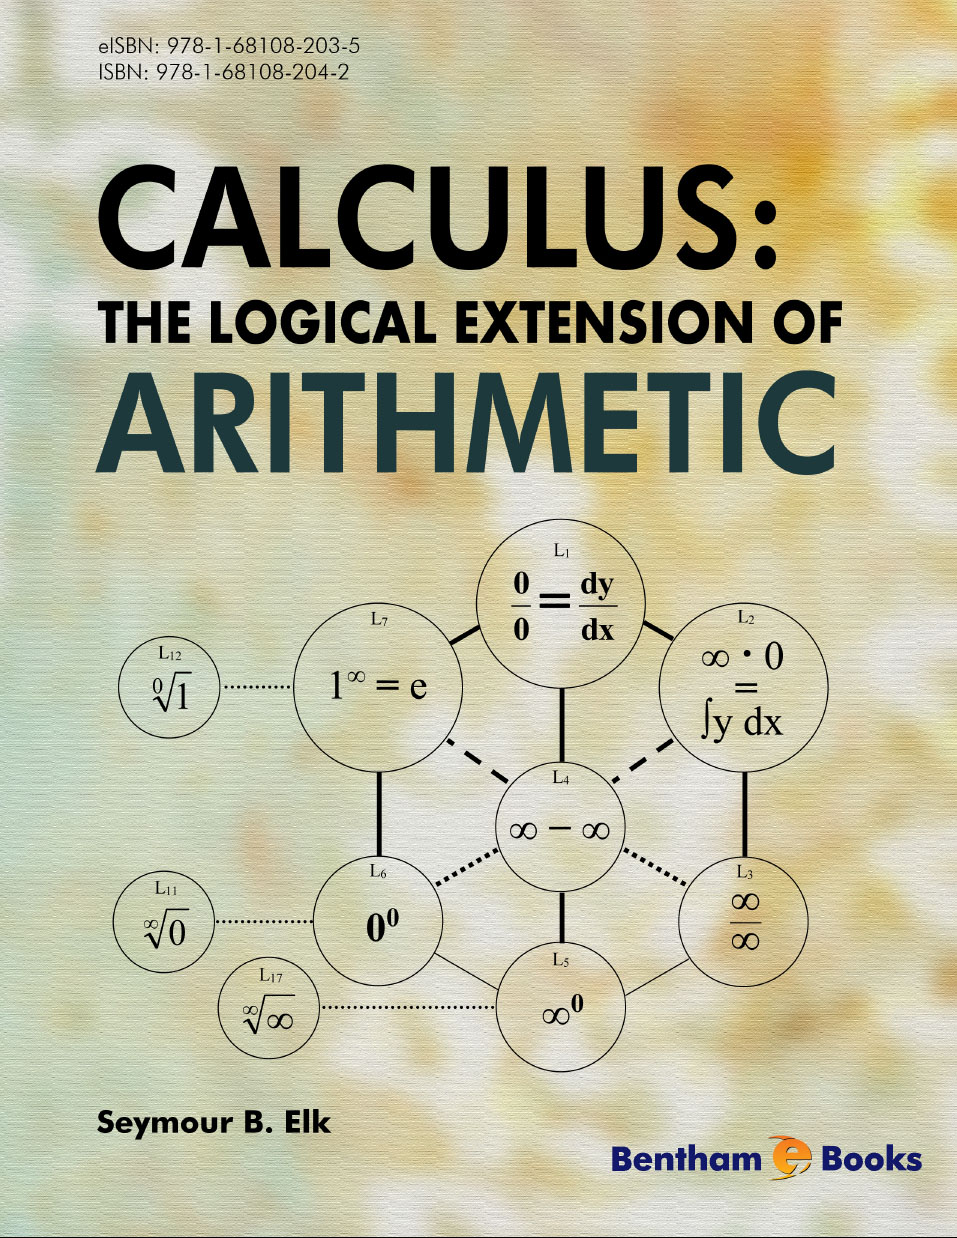 Calculus: The Logical Extension of Arithmetic